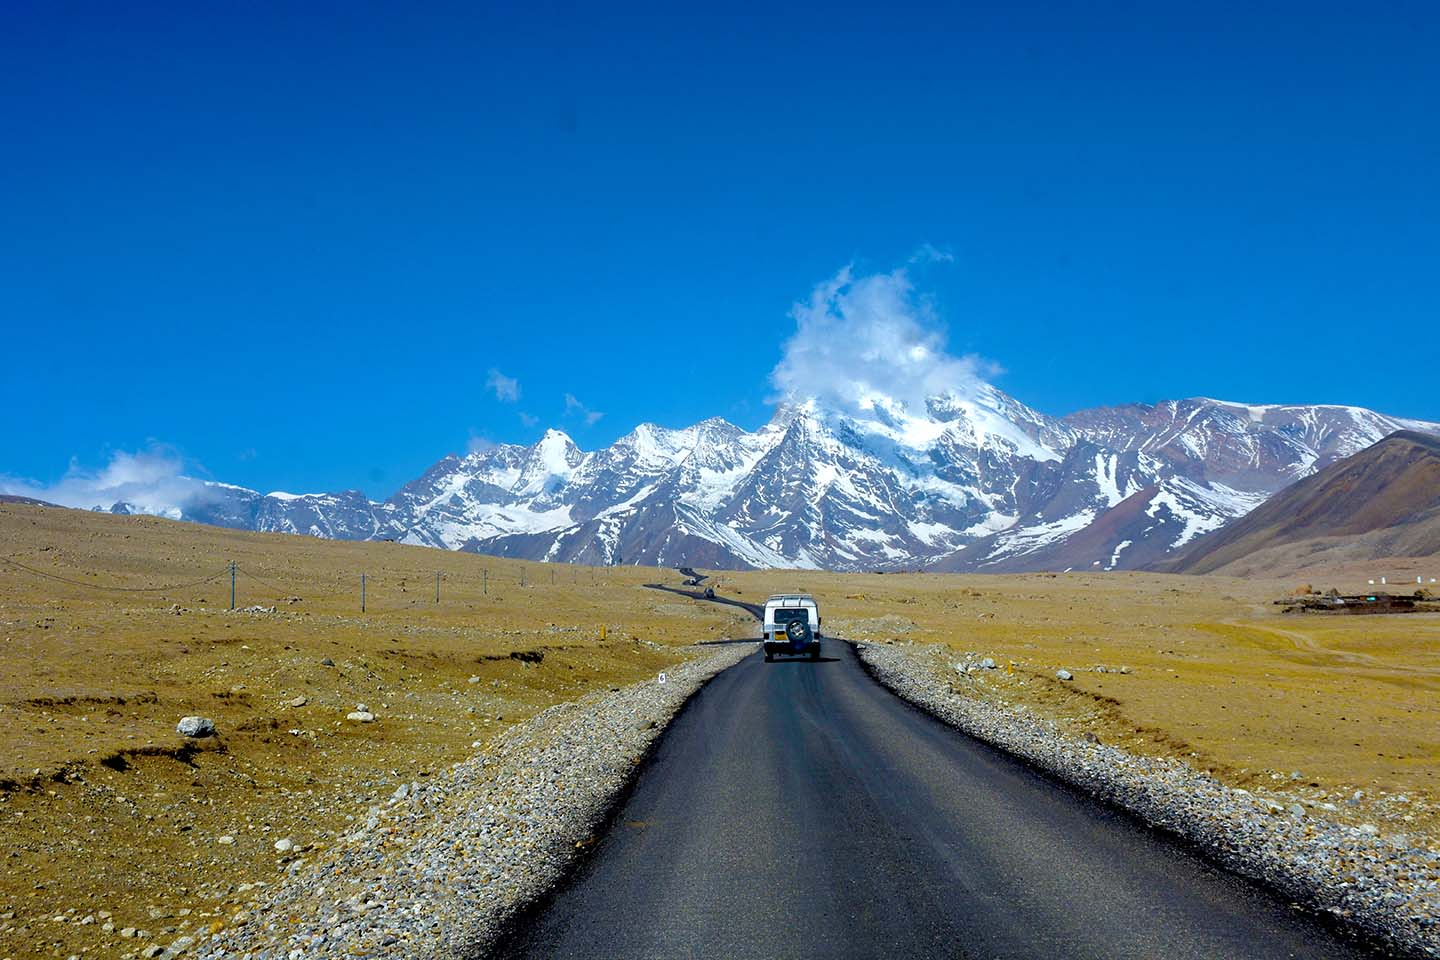 Roads on the way to Gurudongmar Lake, North Sikkim